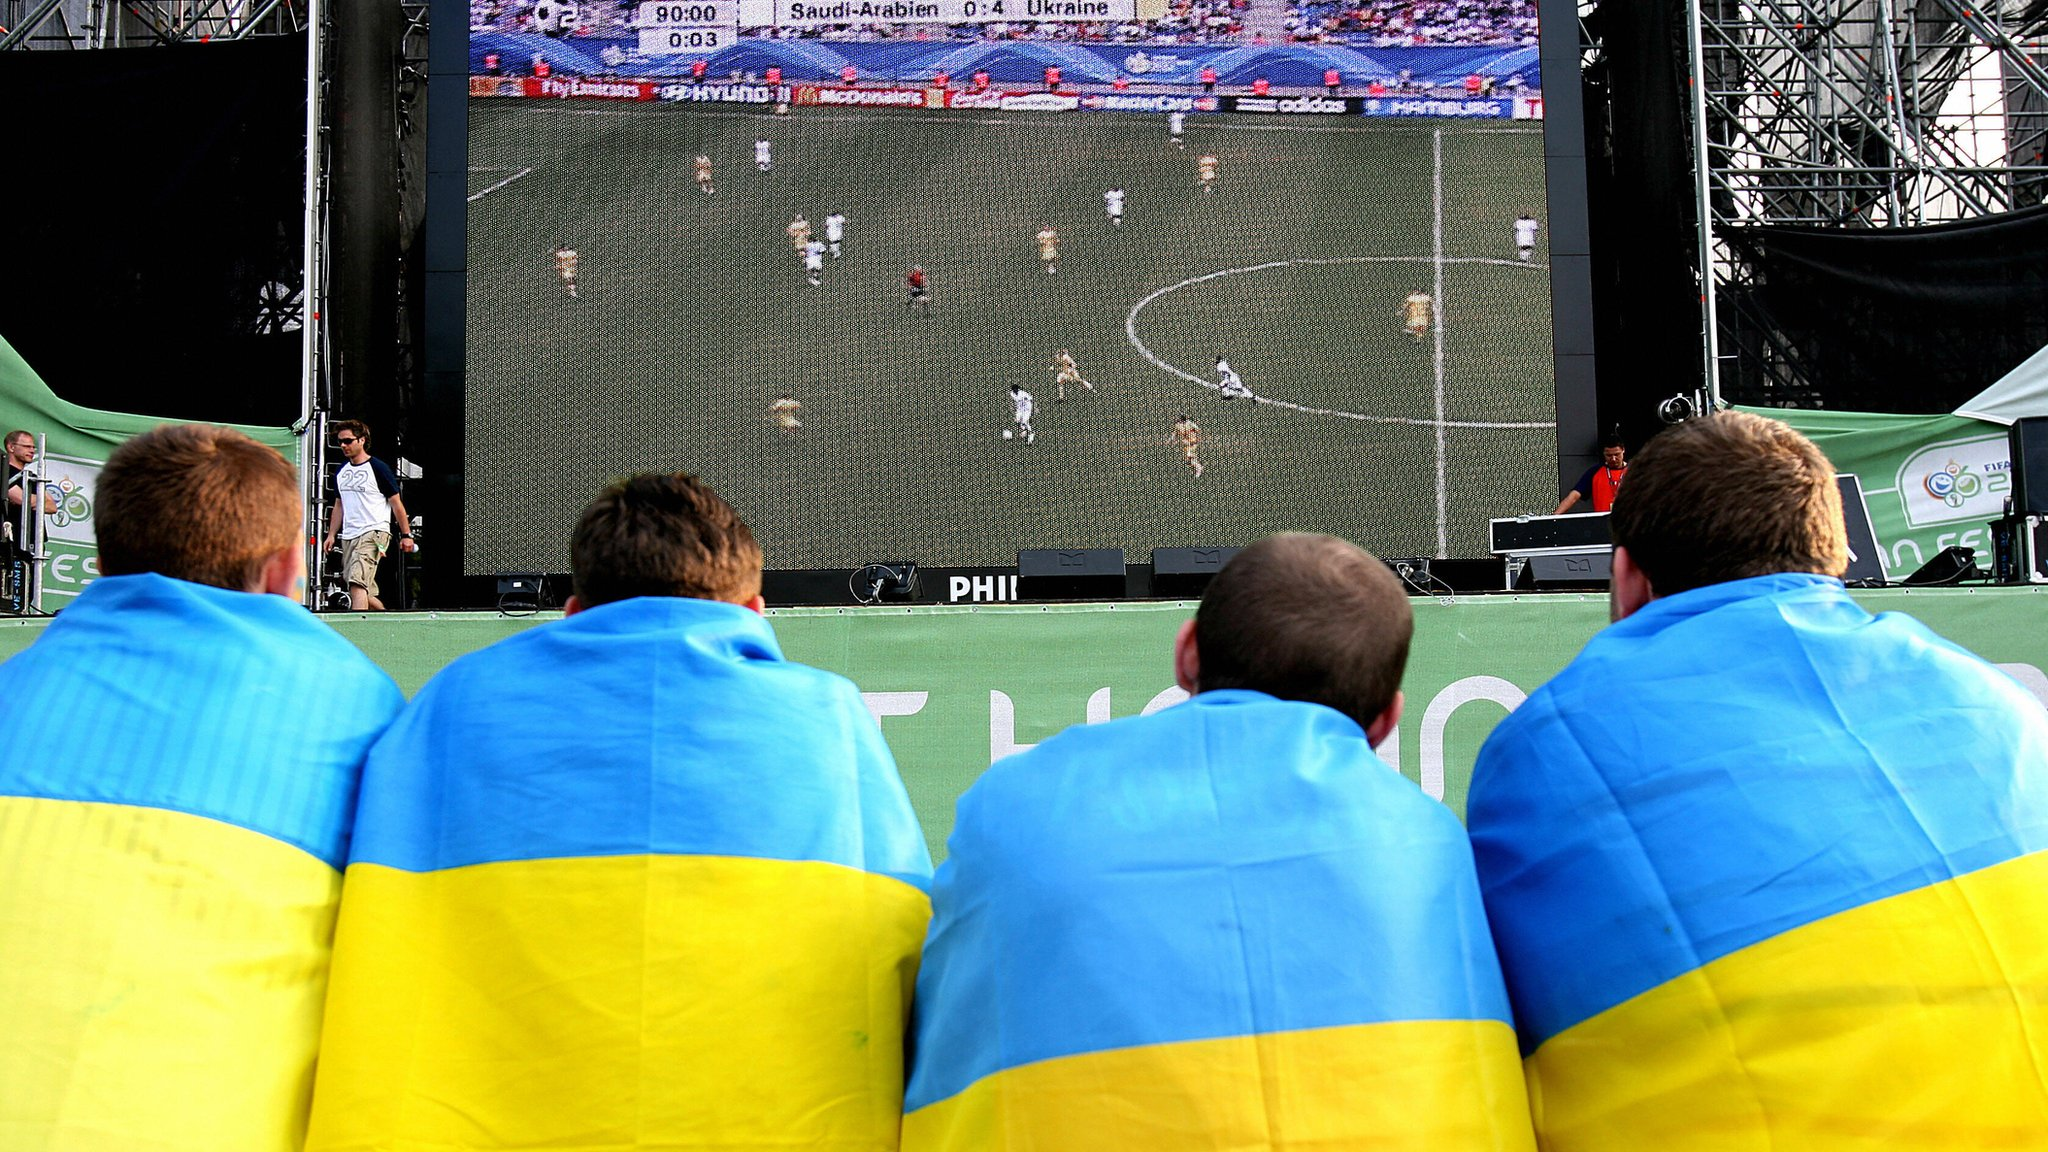 Ukraine match fixing: 35 clubs accused following raids